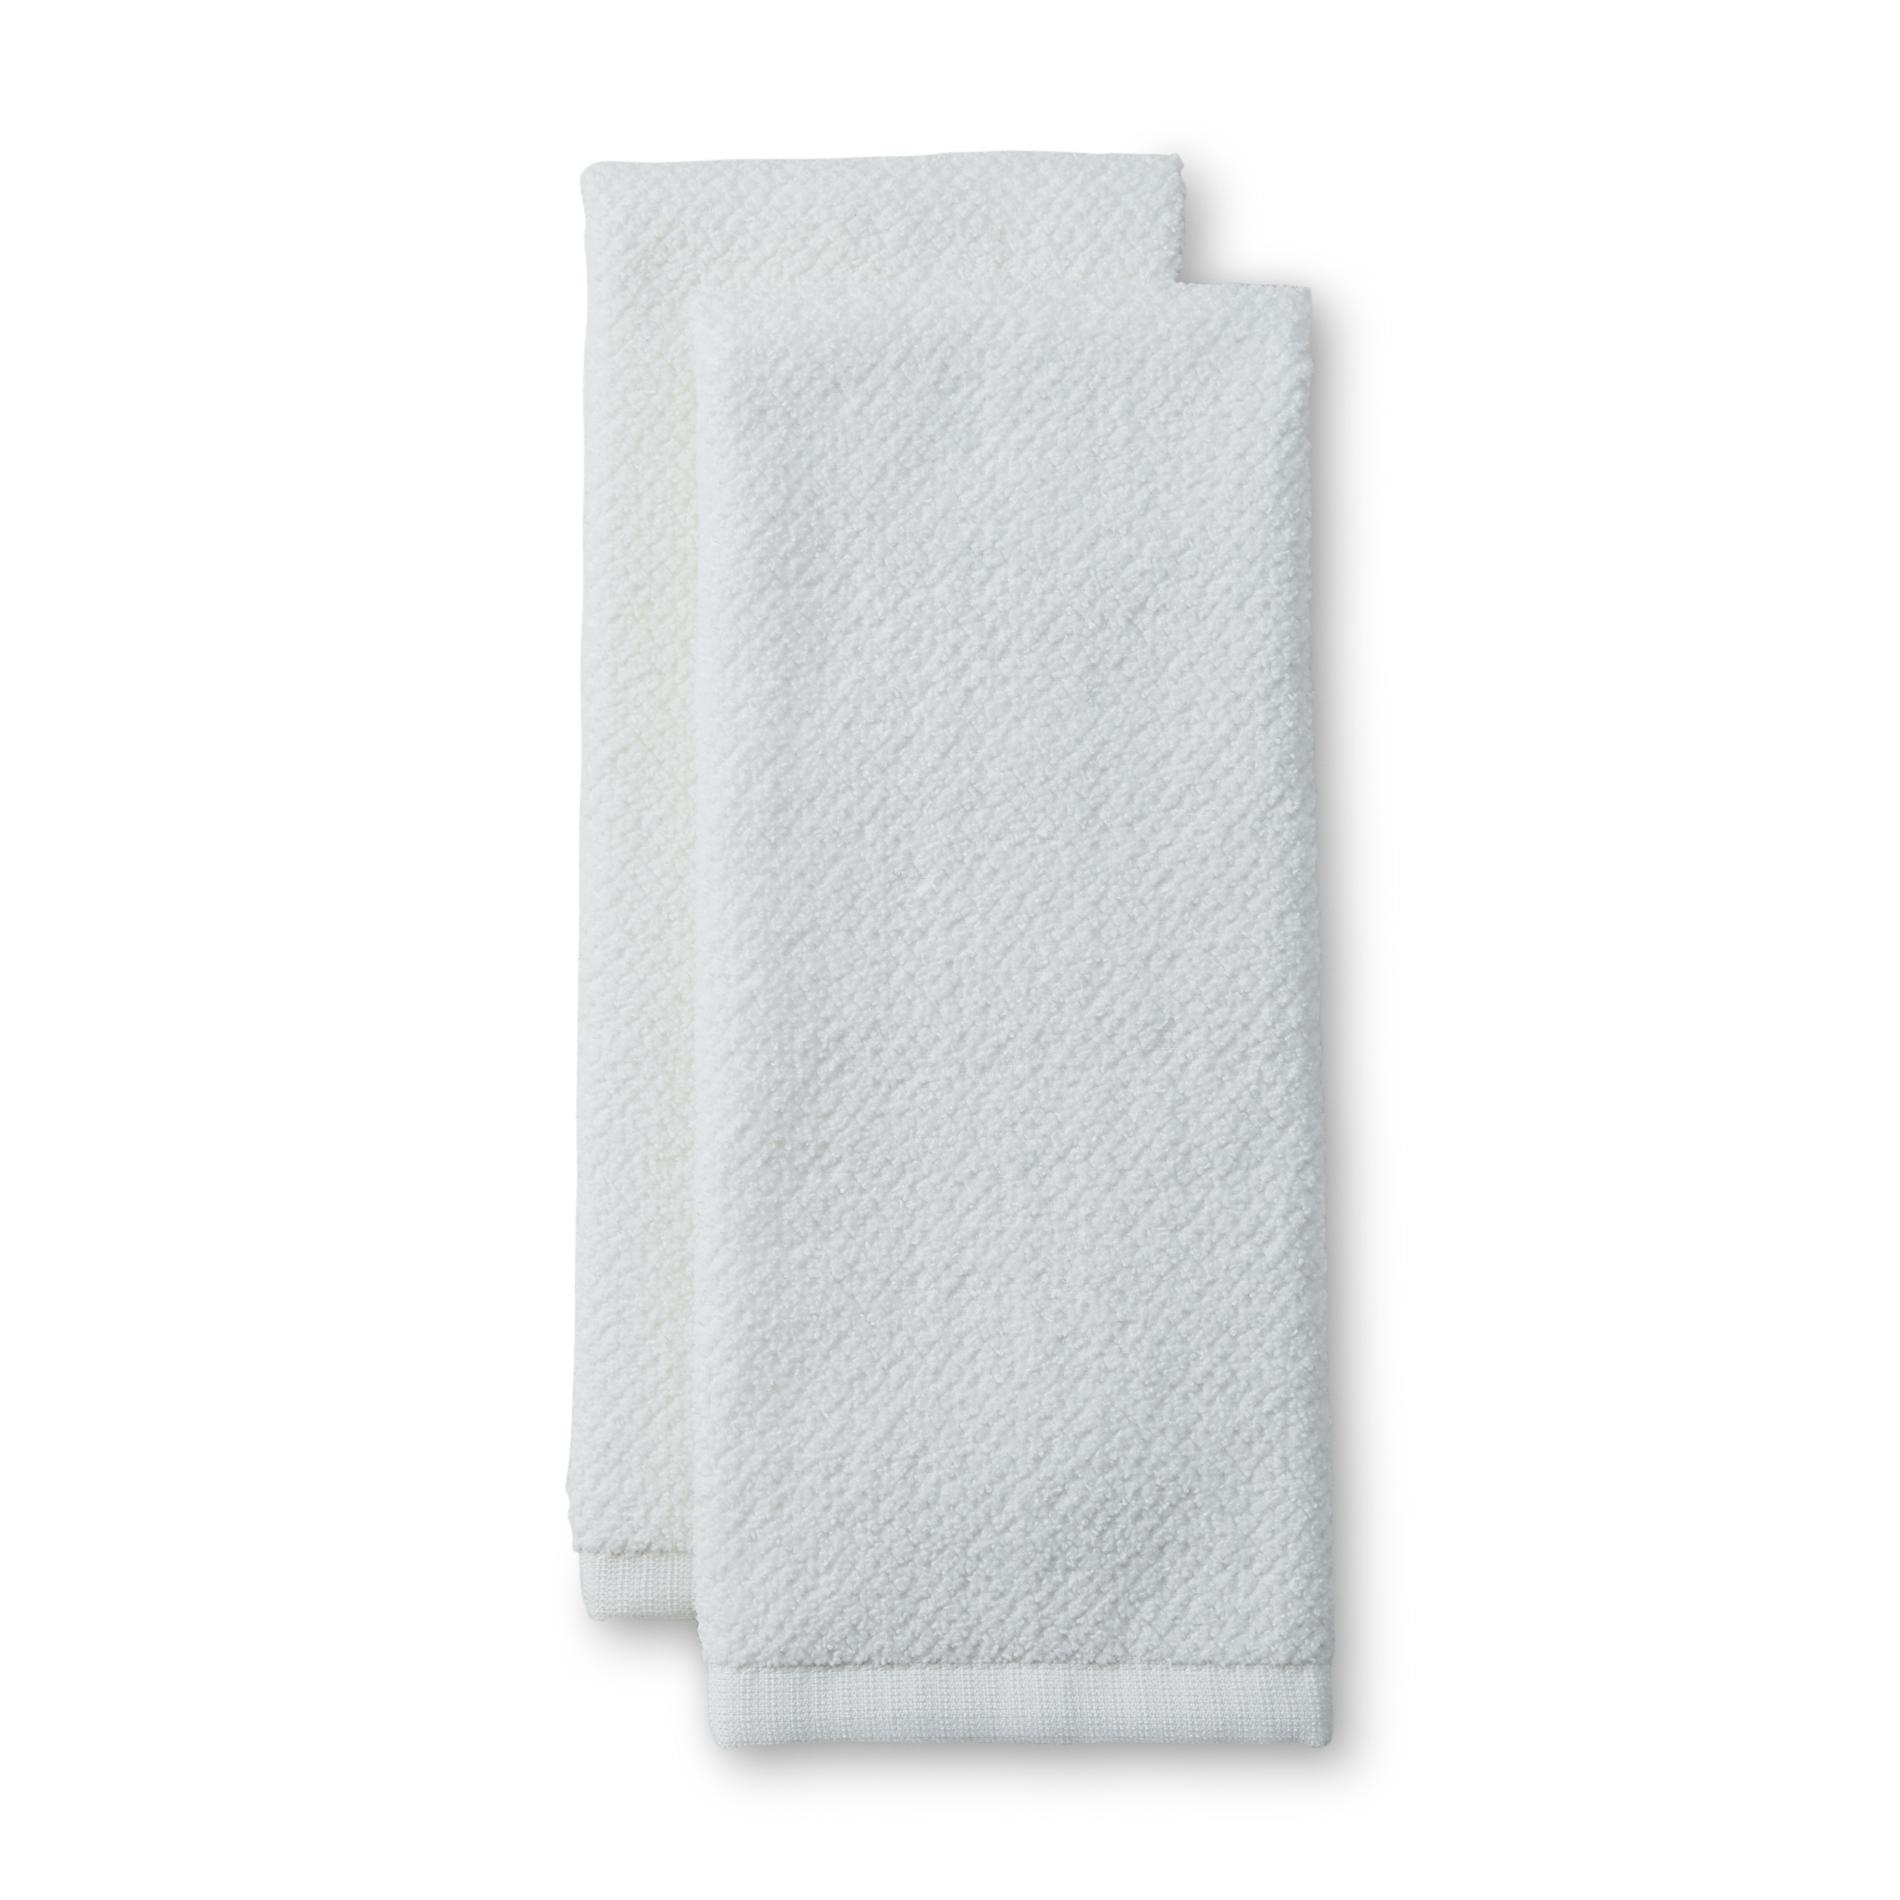 Essential Home 2 Pack Microfiber Kitchen Towels Home Kitchen Kitchen Linens Kitchen Towels